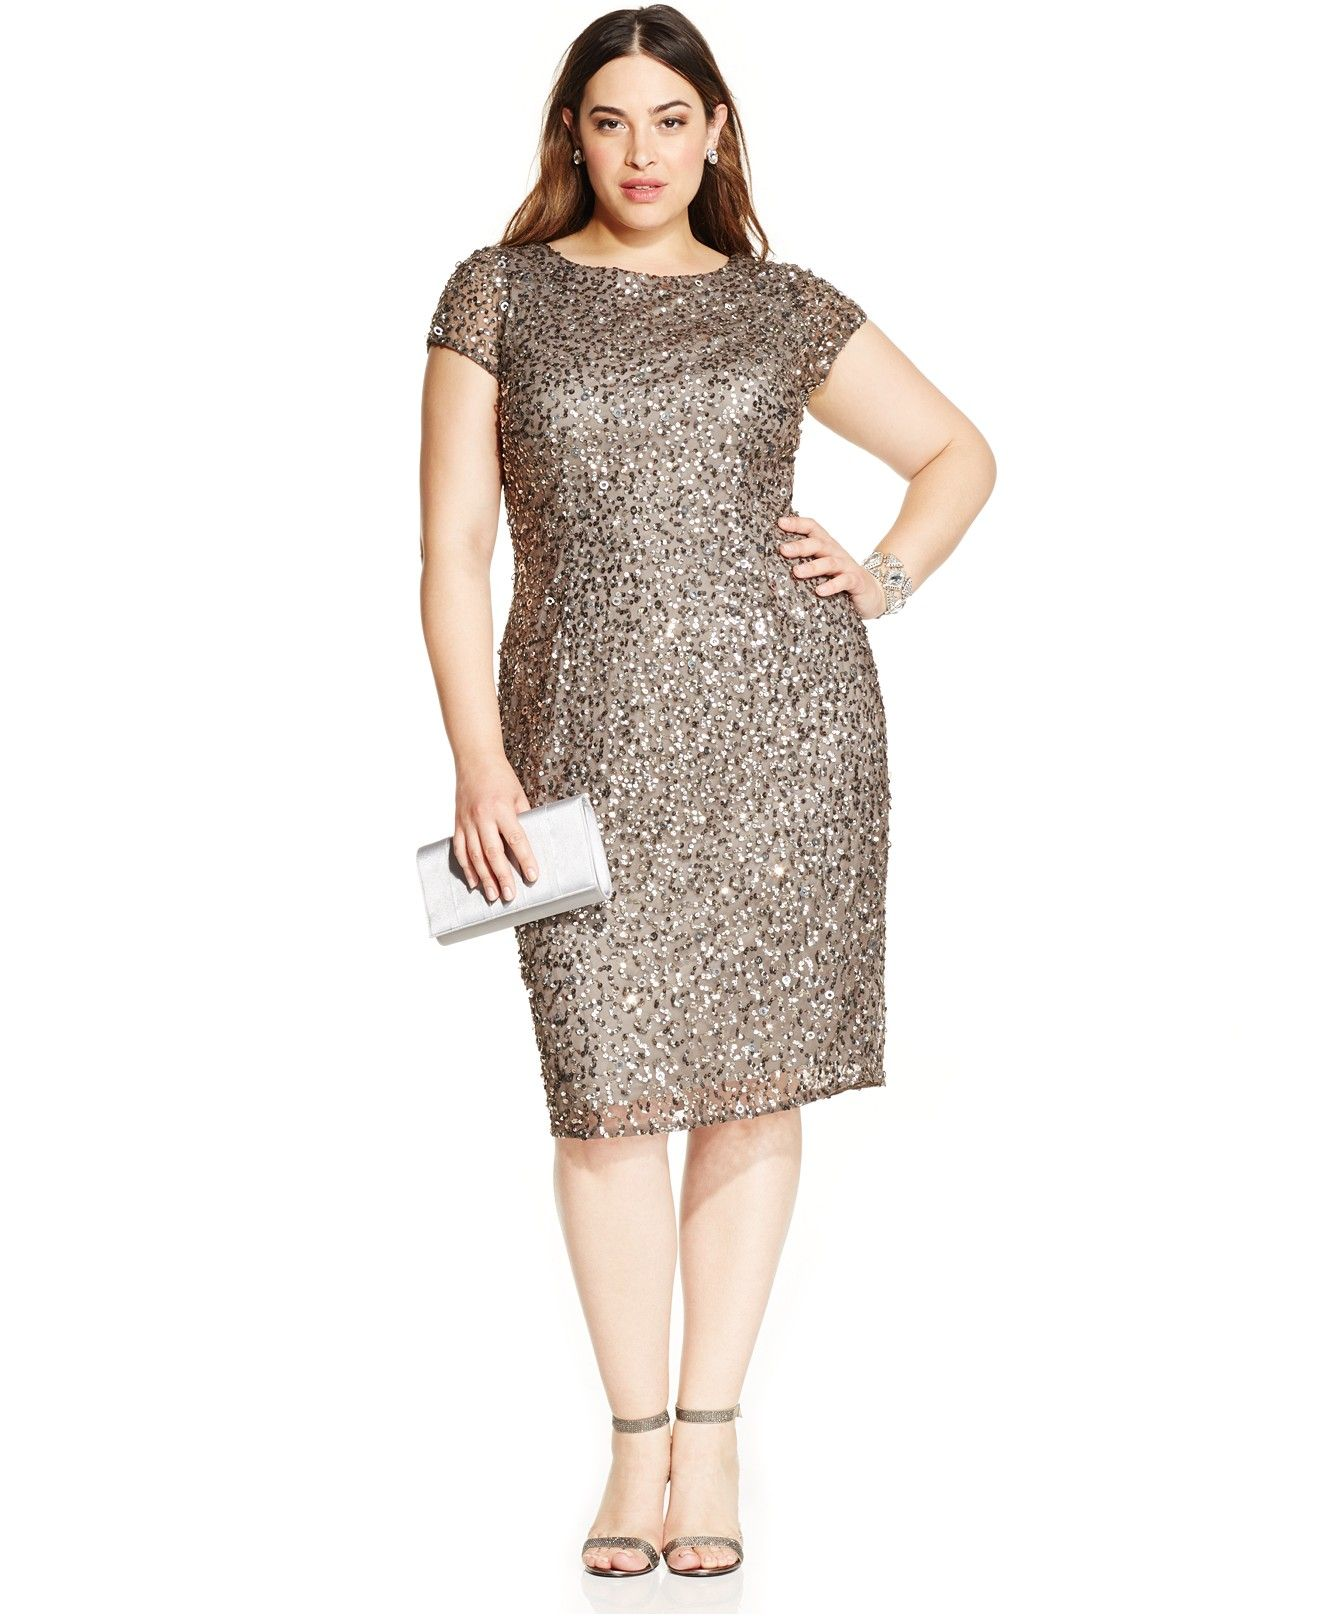 Adrianna Papell Grey Plus Size Dresses